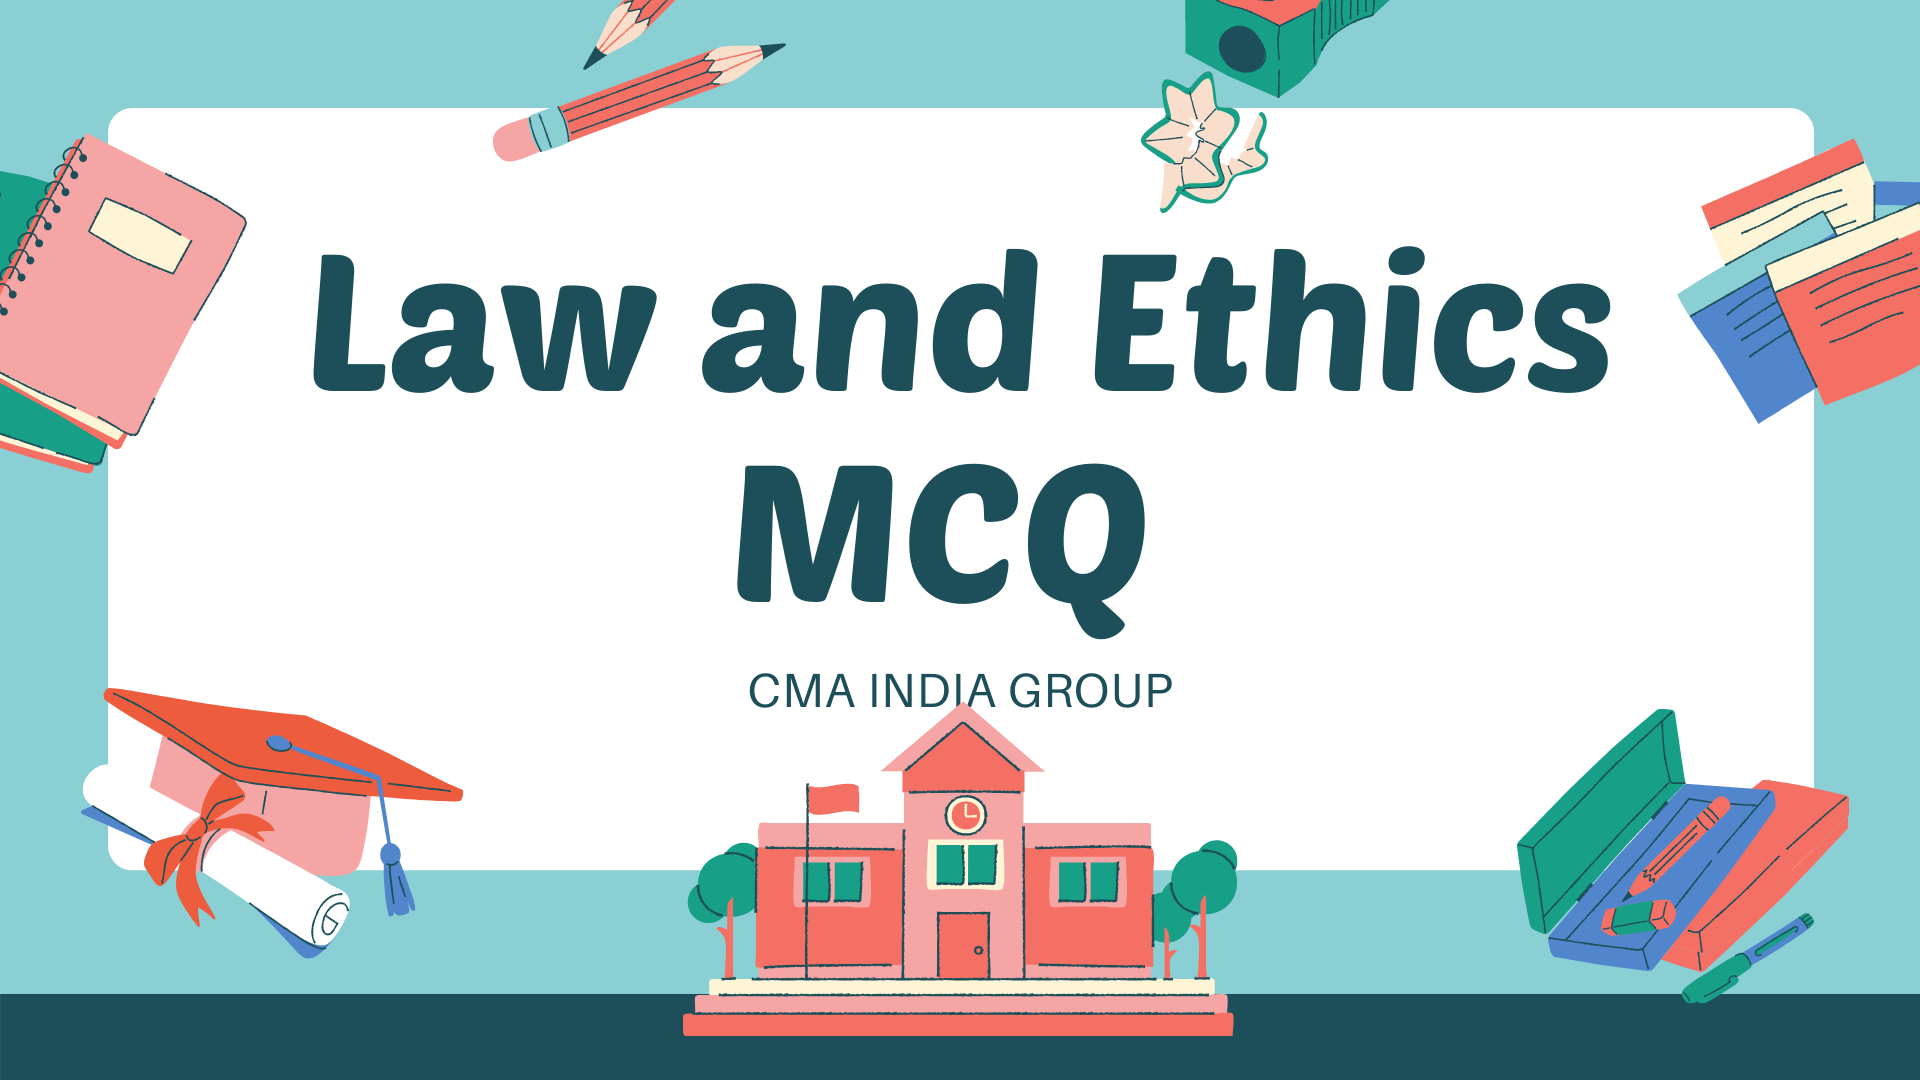 Law and Ethics MCQ june 2021